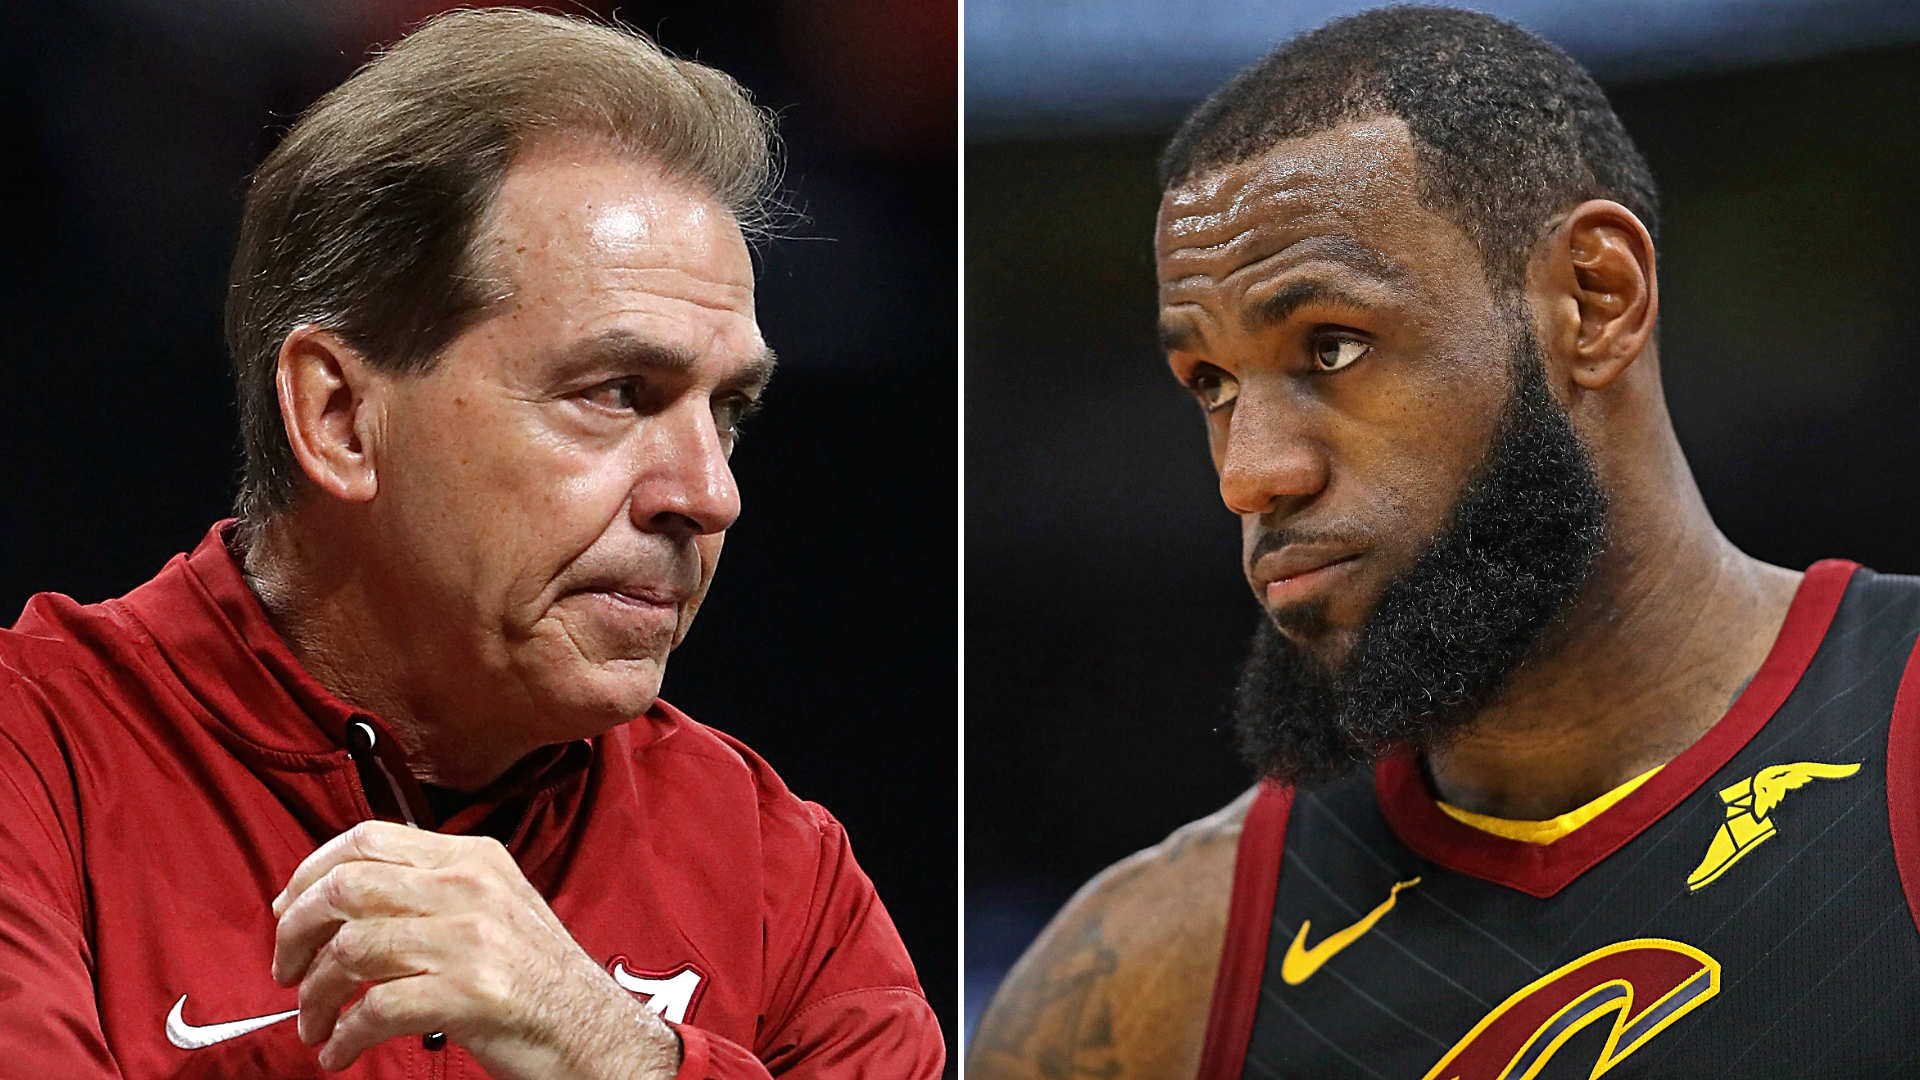 Alabama gets copyright infringement letter from LeBron James 'Uninterrupted' over 'Shop Talk'